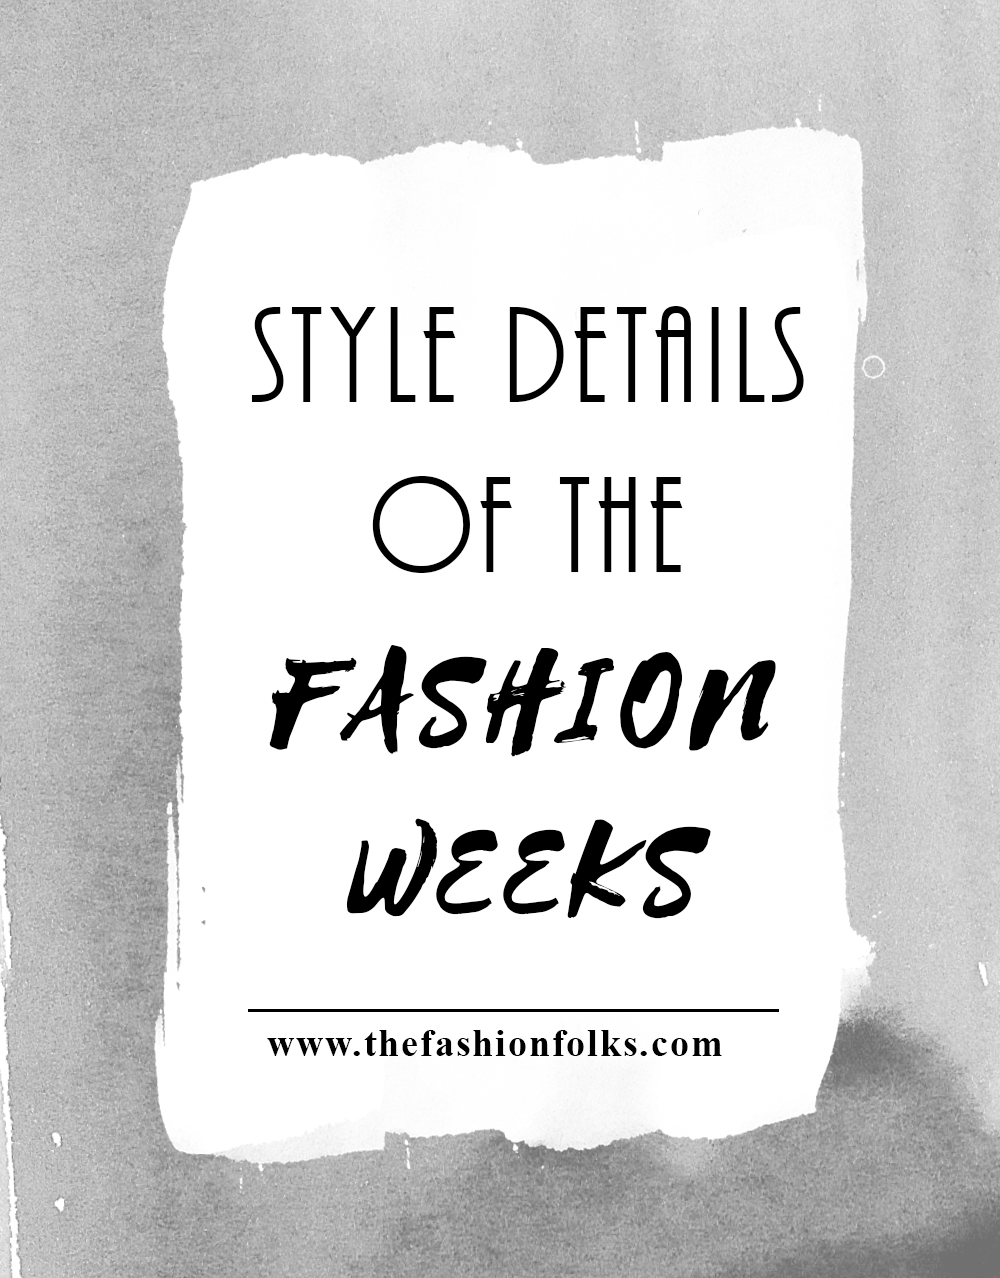 Style Details of The Fashion Weeks   The Fashion Folks